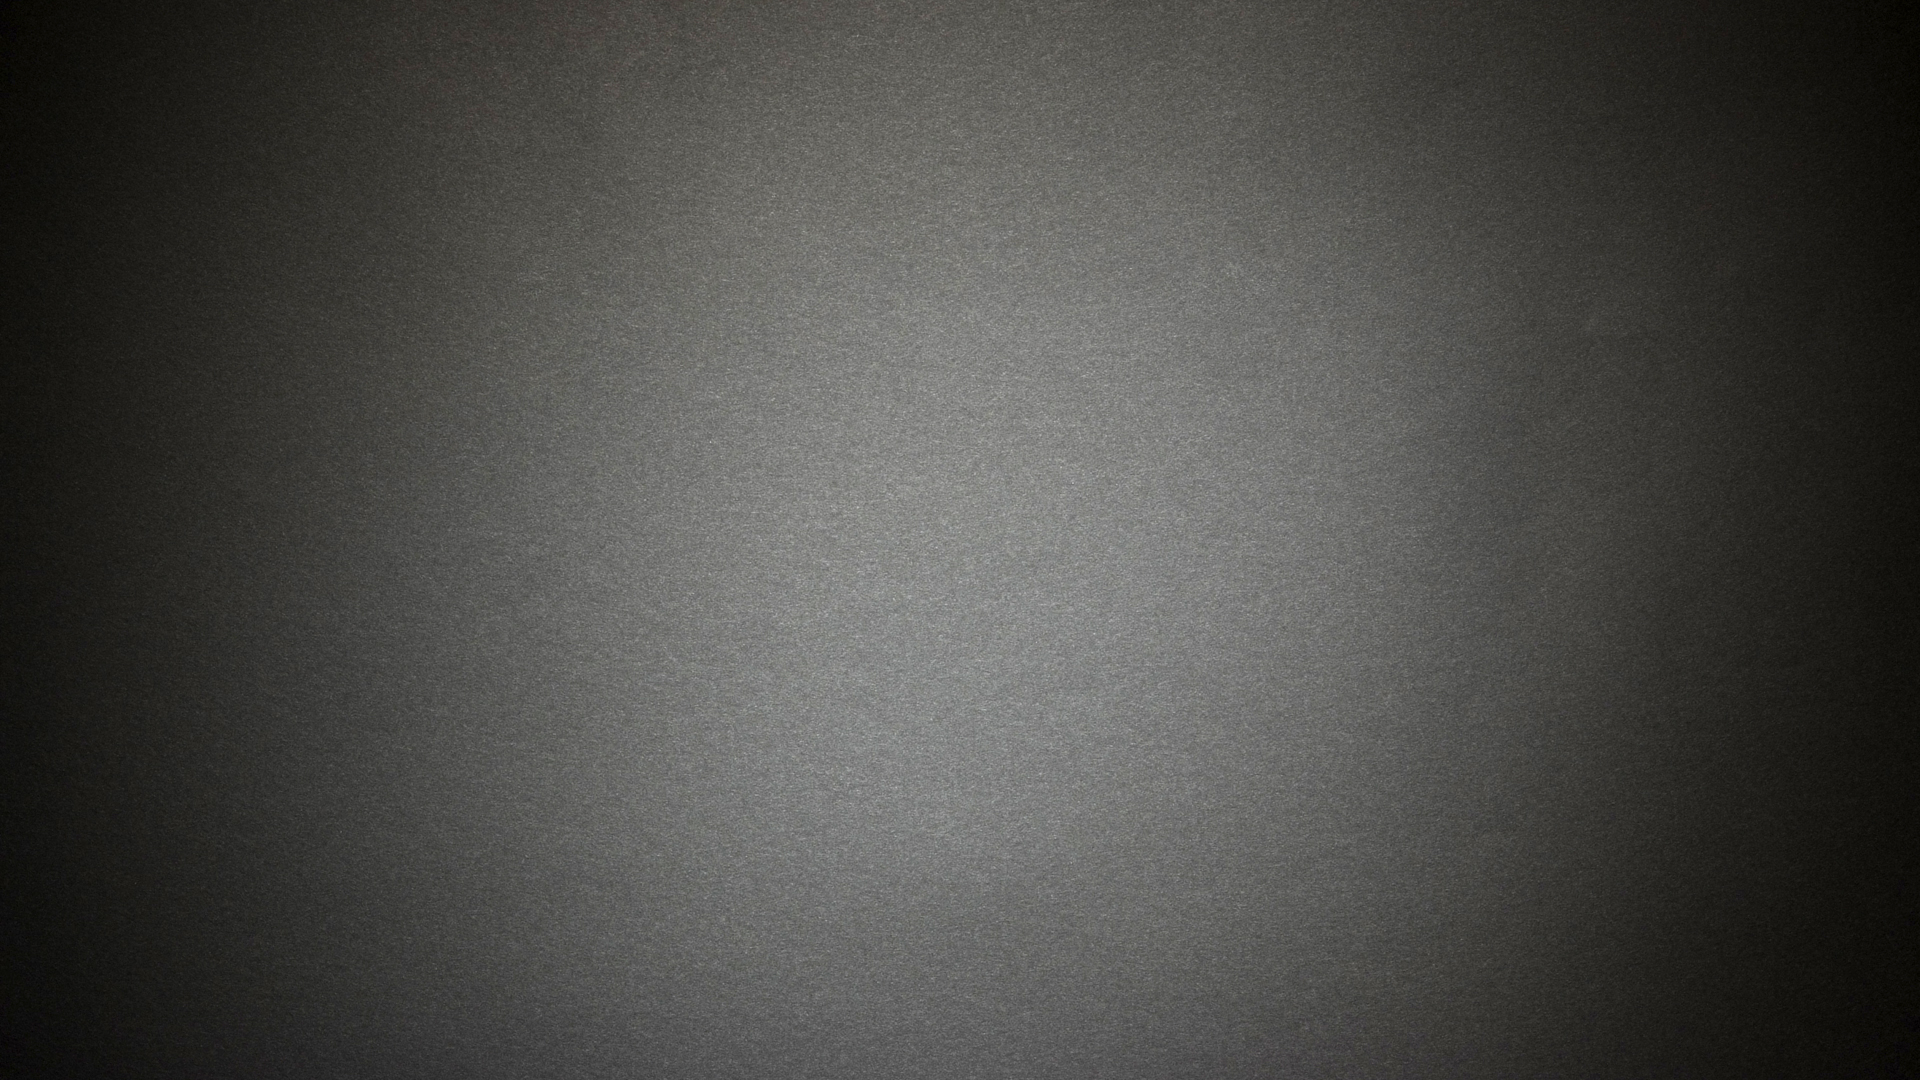 Elegant Free Background Pictures For Websites - No Zoku Image and